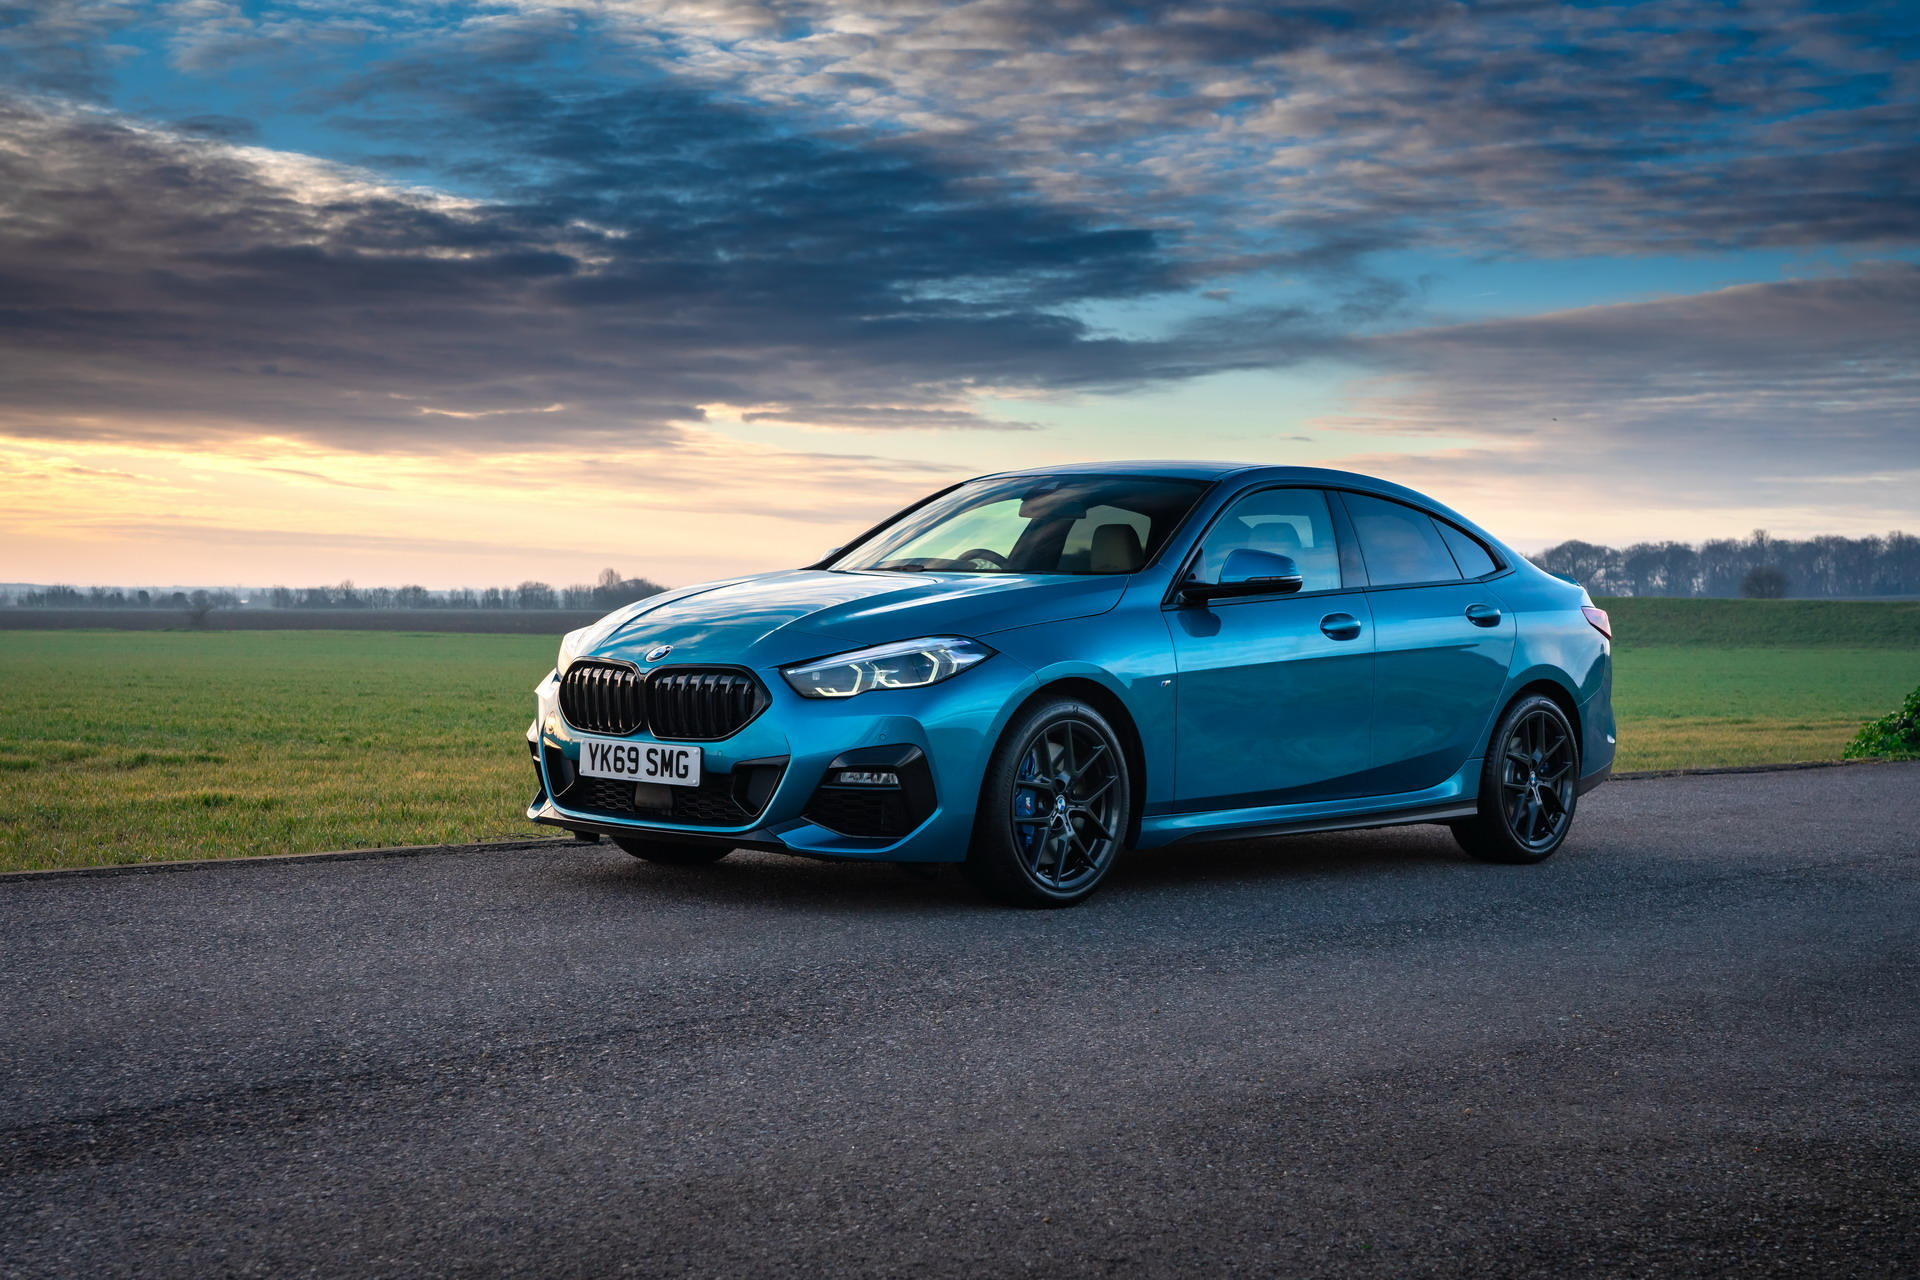 BMW 2 Series Gran Coupe priced from £25,815 in UK